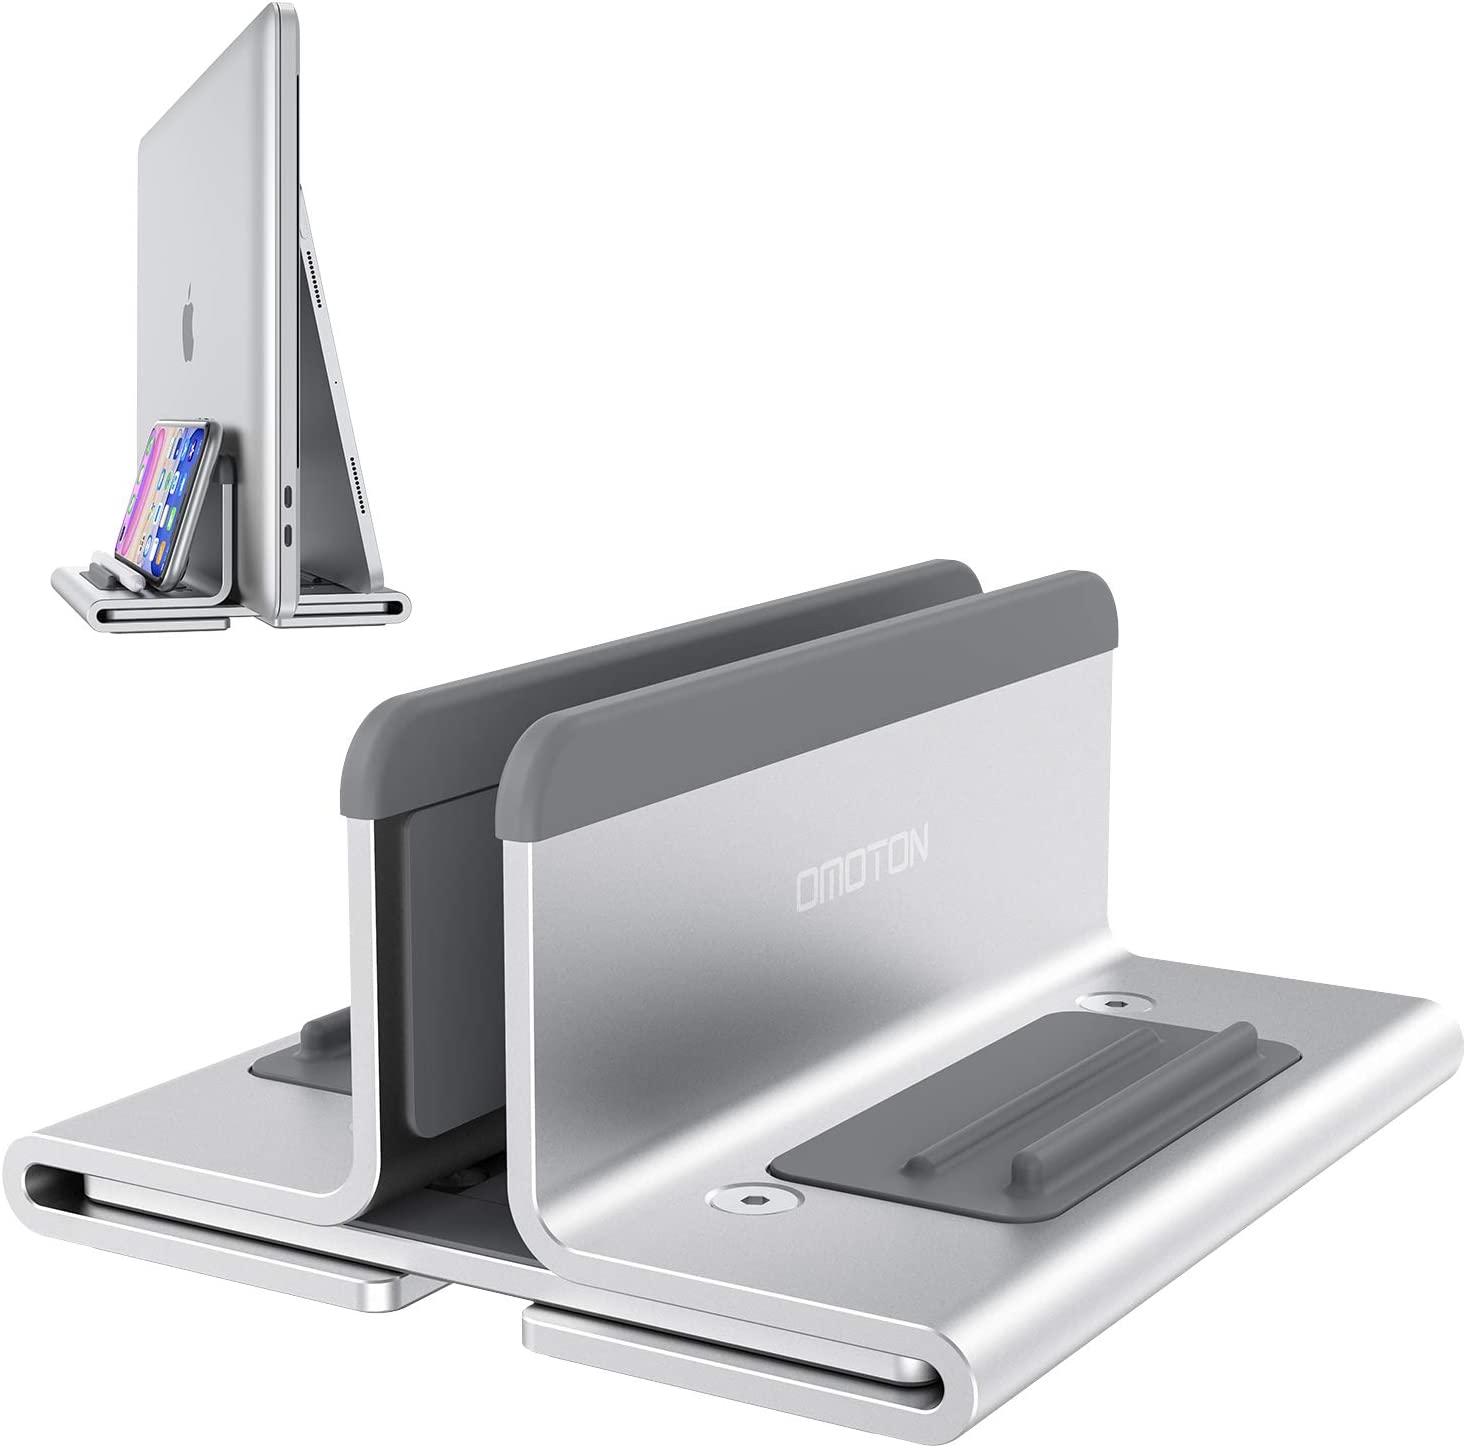 Upgraded Laptop Vertical Stand, OMOTON 3-in-1 MacBook Laptop Holder Dock with Sturdy Silicone Pads for Ultra Protection, Suitable for iPhone/iPad/MacBook Pro/Surface/Samsung/Android Tablets, Silver